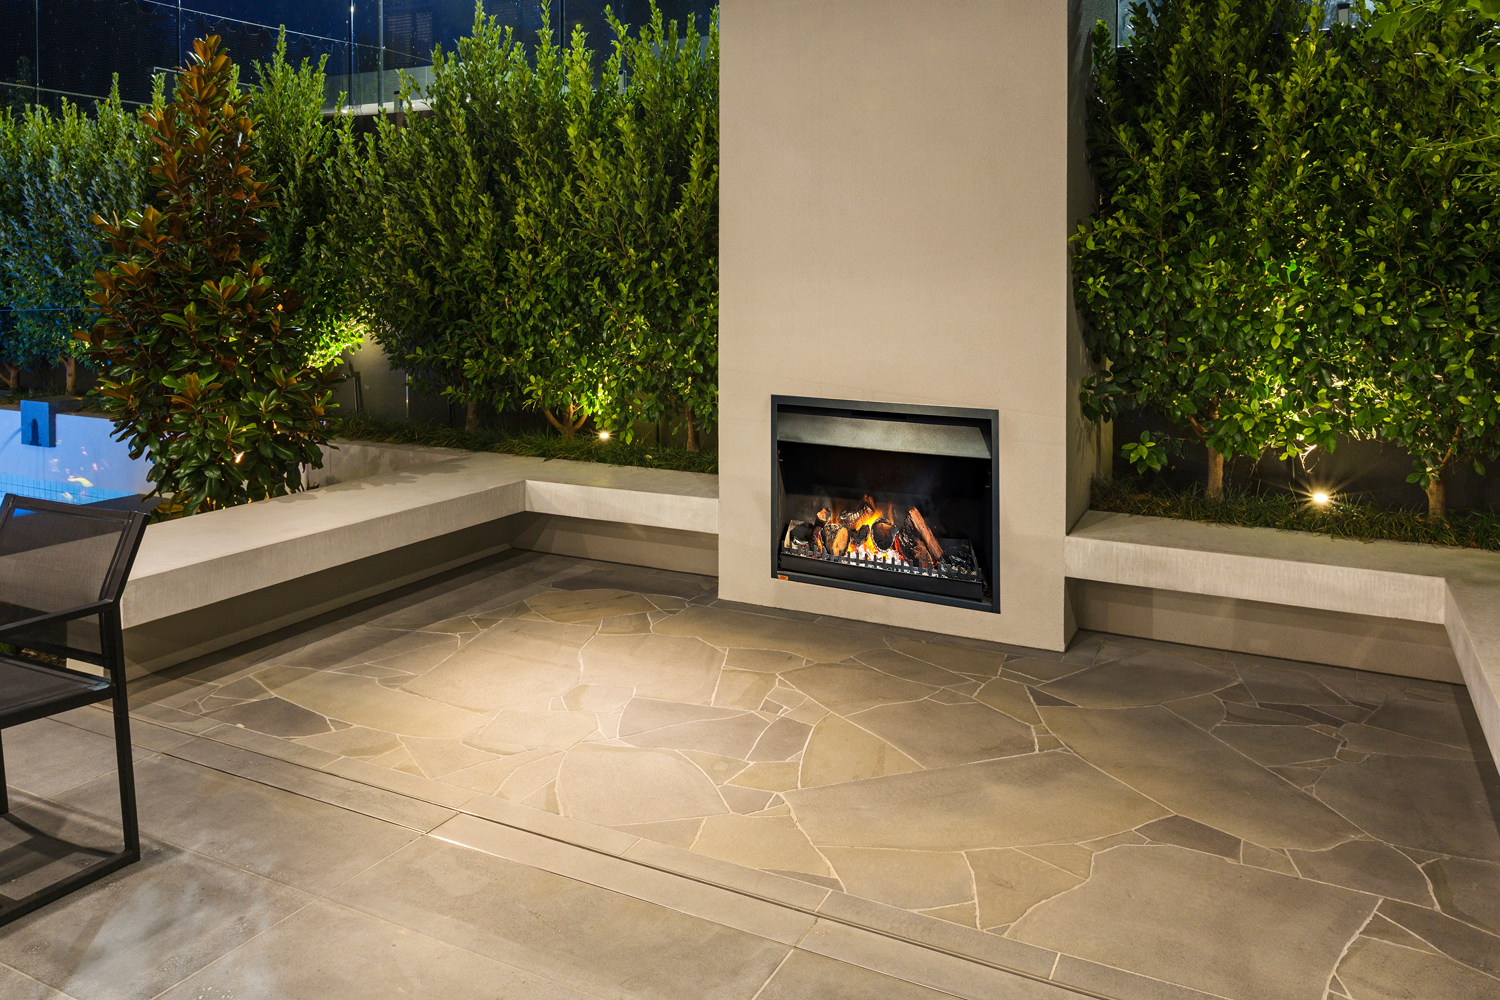 Bluestone paving features centre stage in this outdoor entertaining area